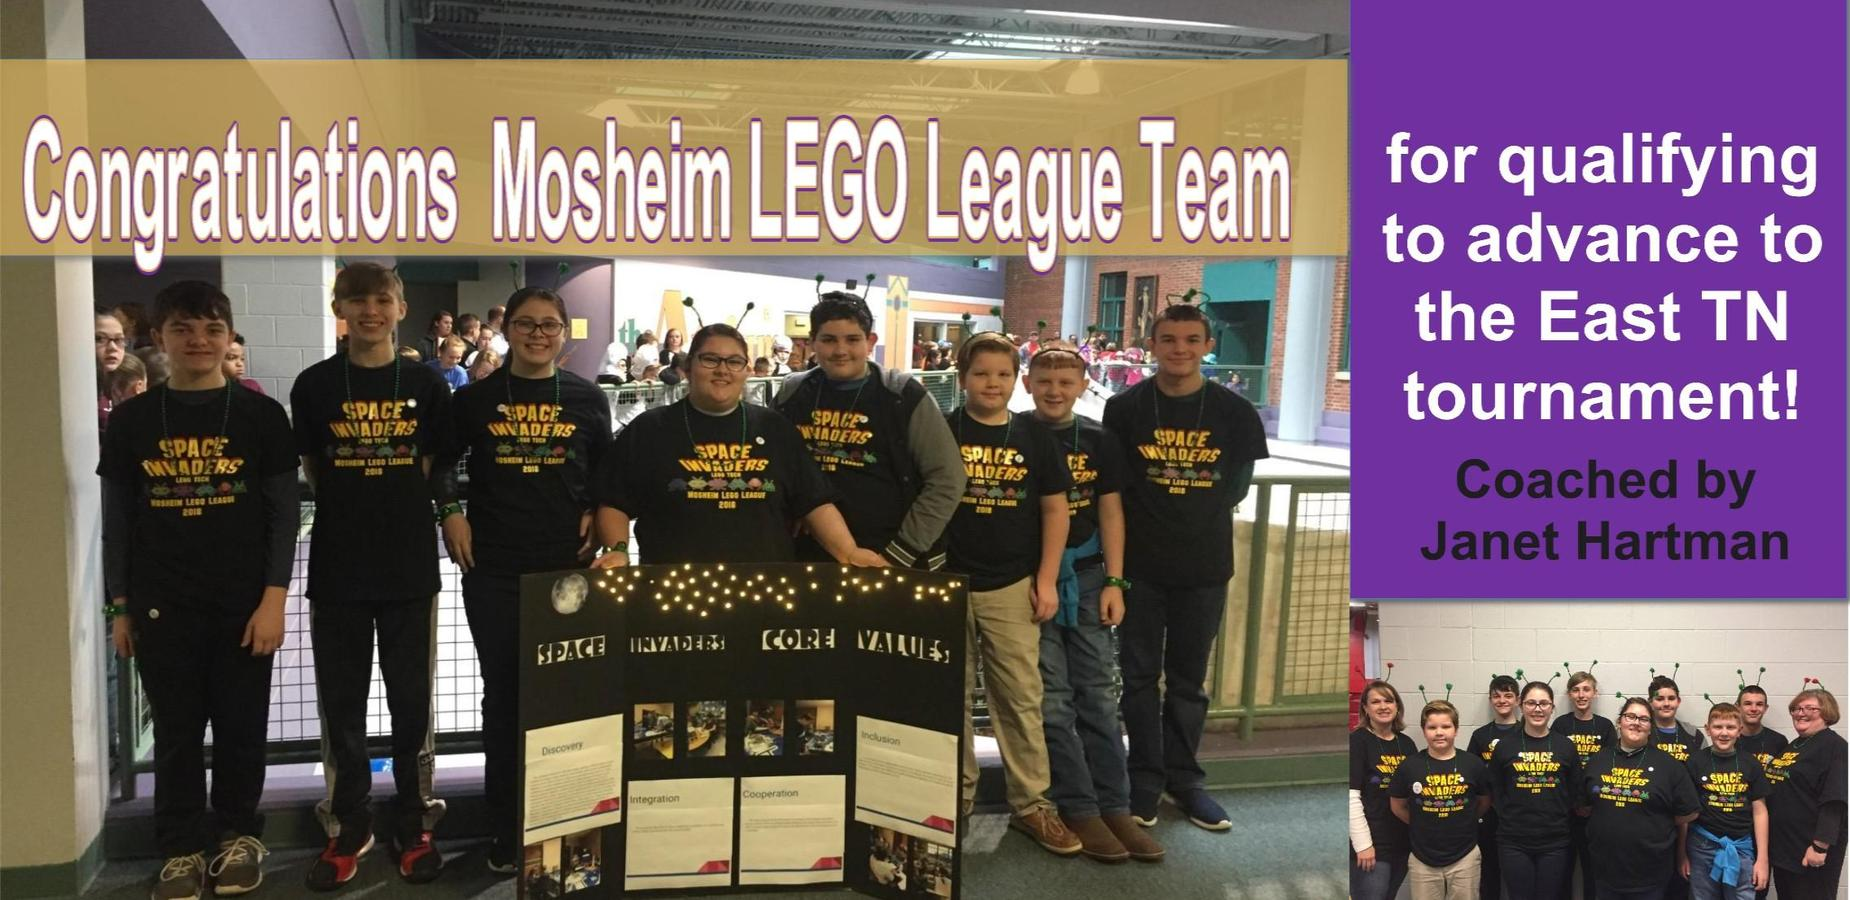 Mosheim Lego League